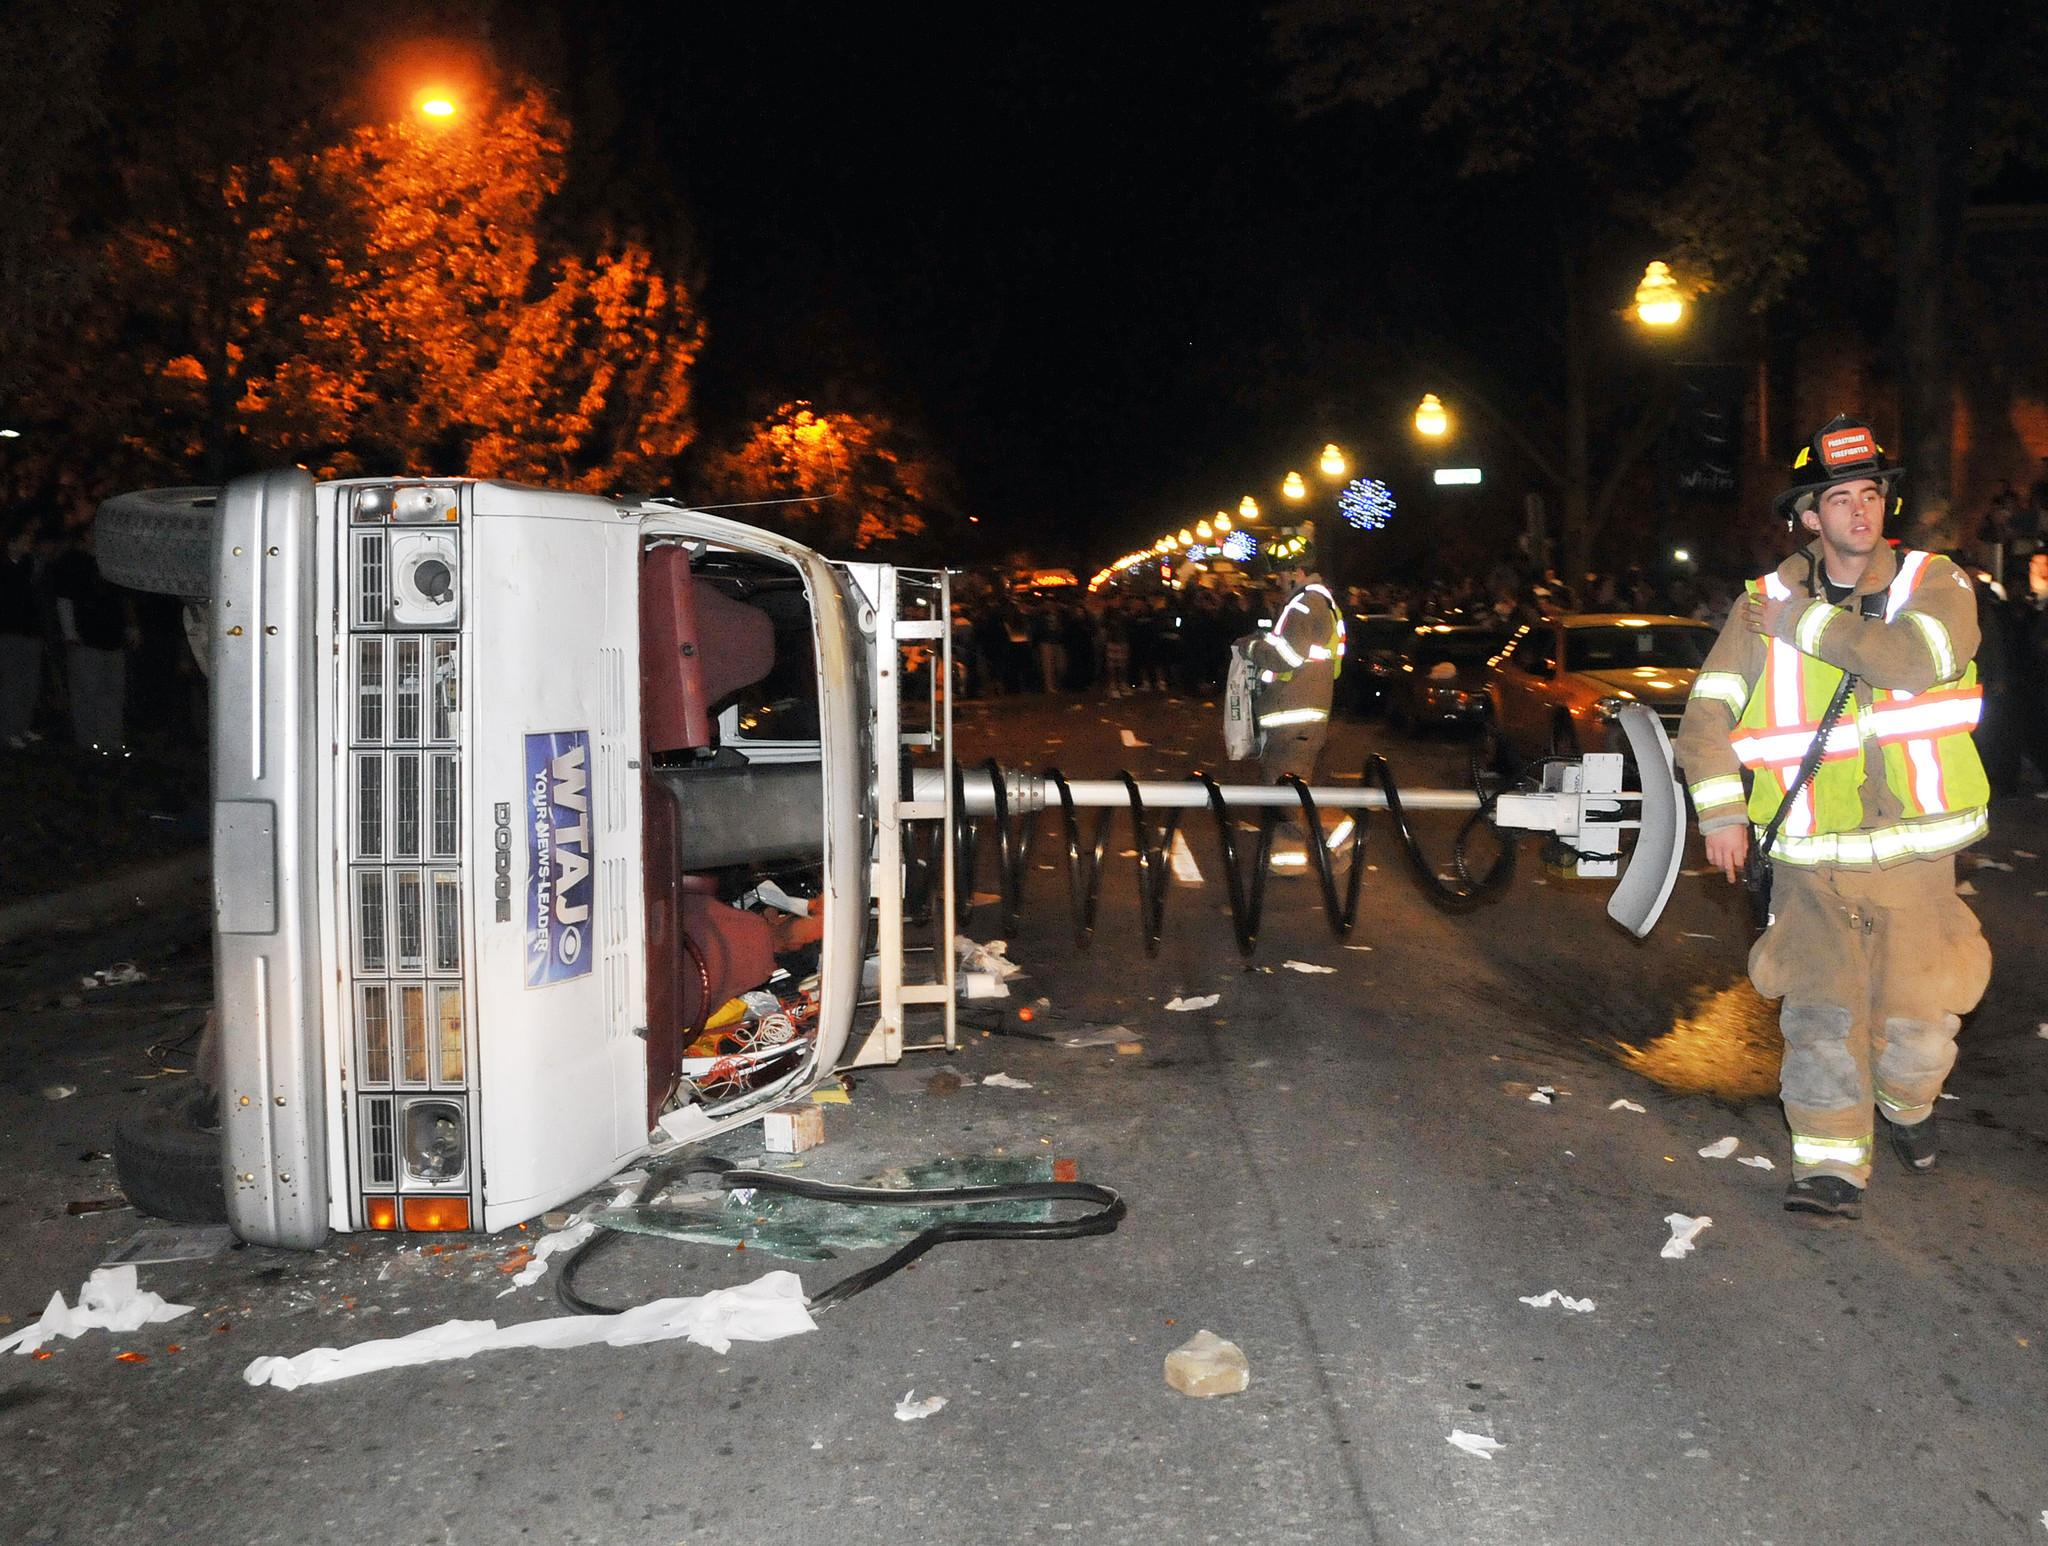 An overturned news van is seen in the middle of College Ave as students protest against the firing of Penn State football coach Joe Paterno in State College, Pennsylvania.